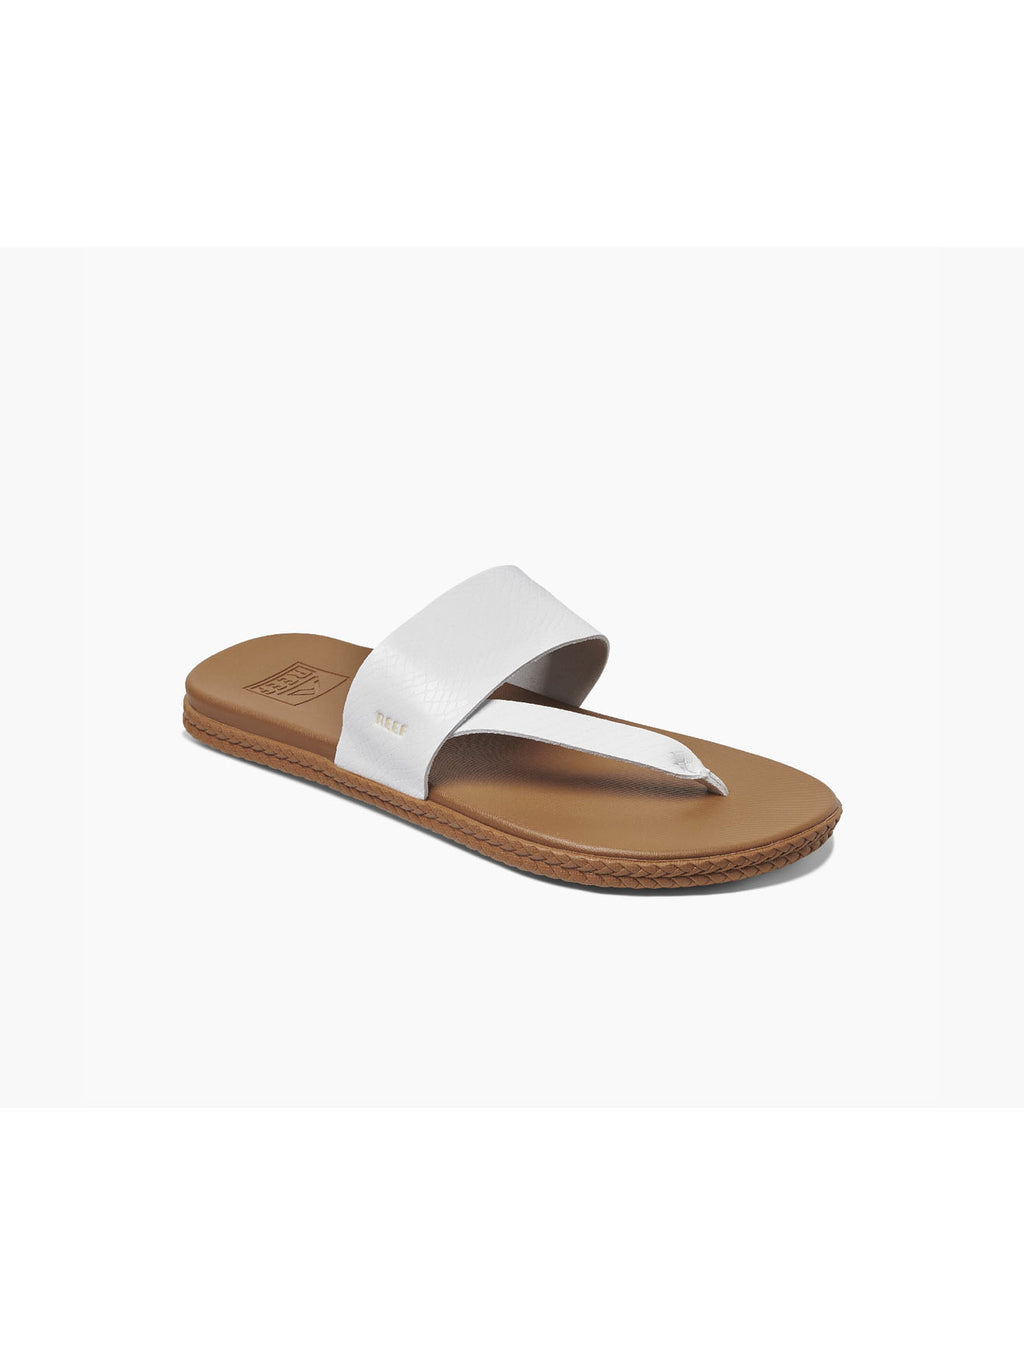 Reef Cushion Bounce Sole Sandal in White